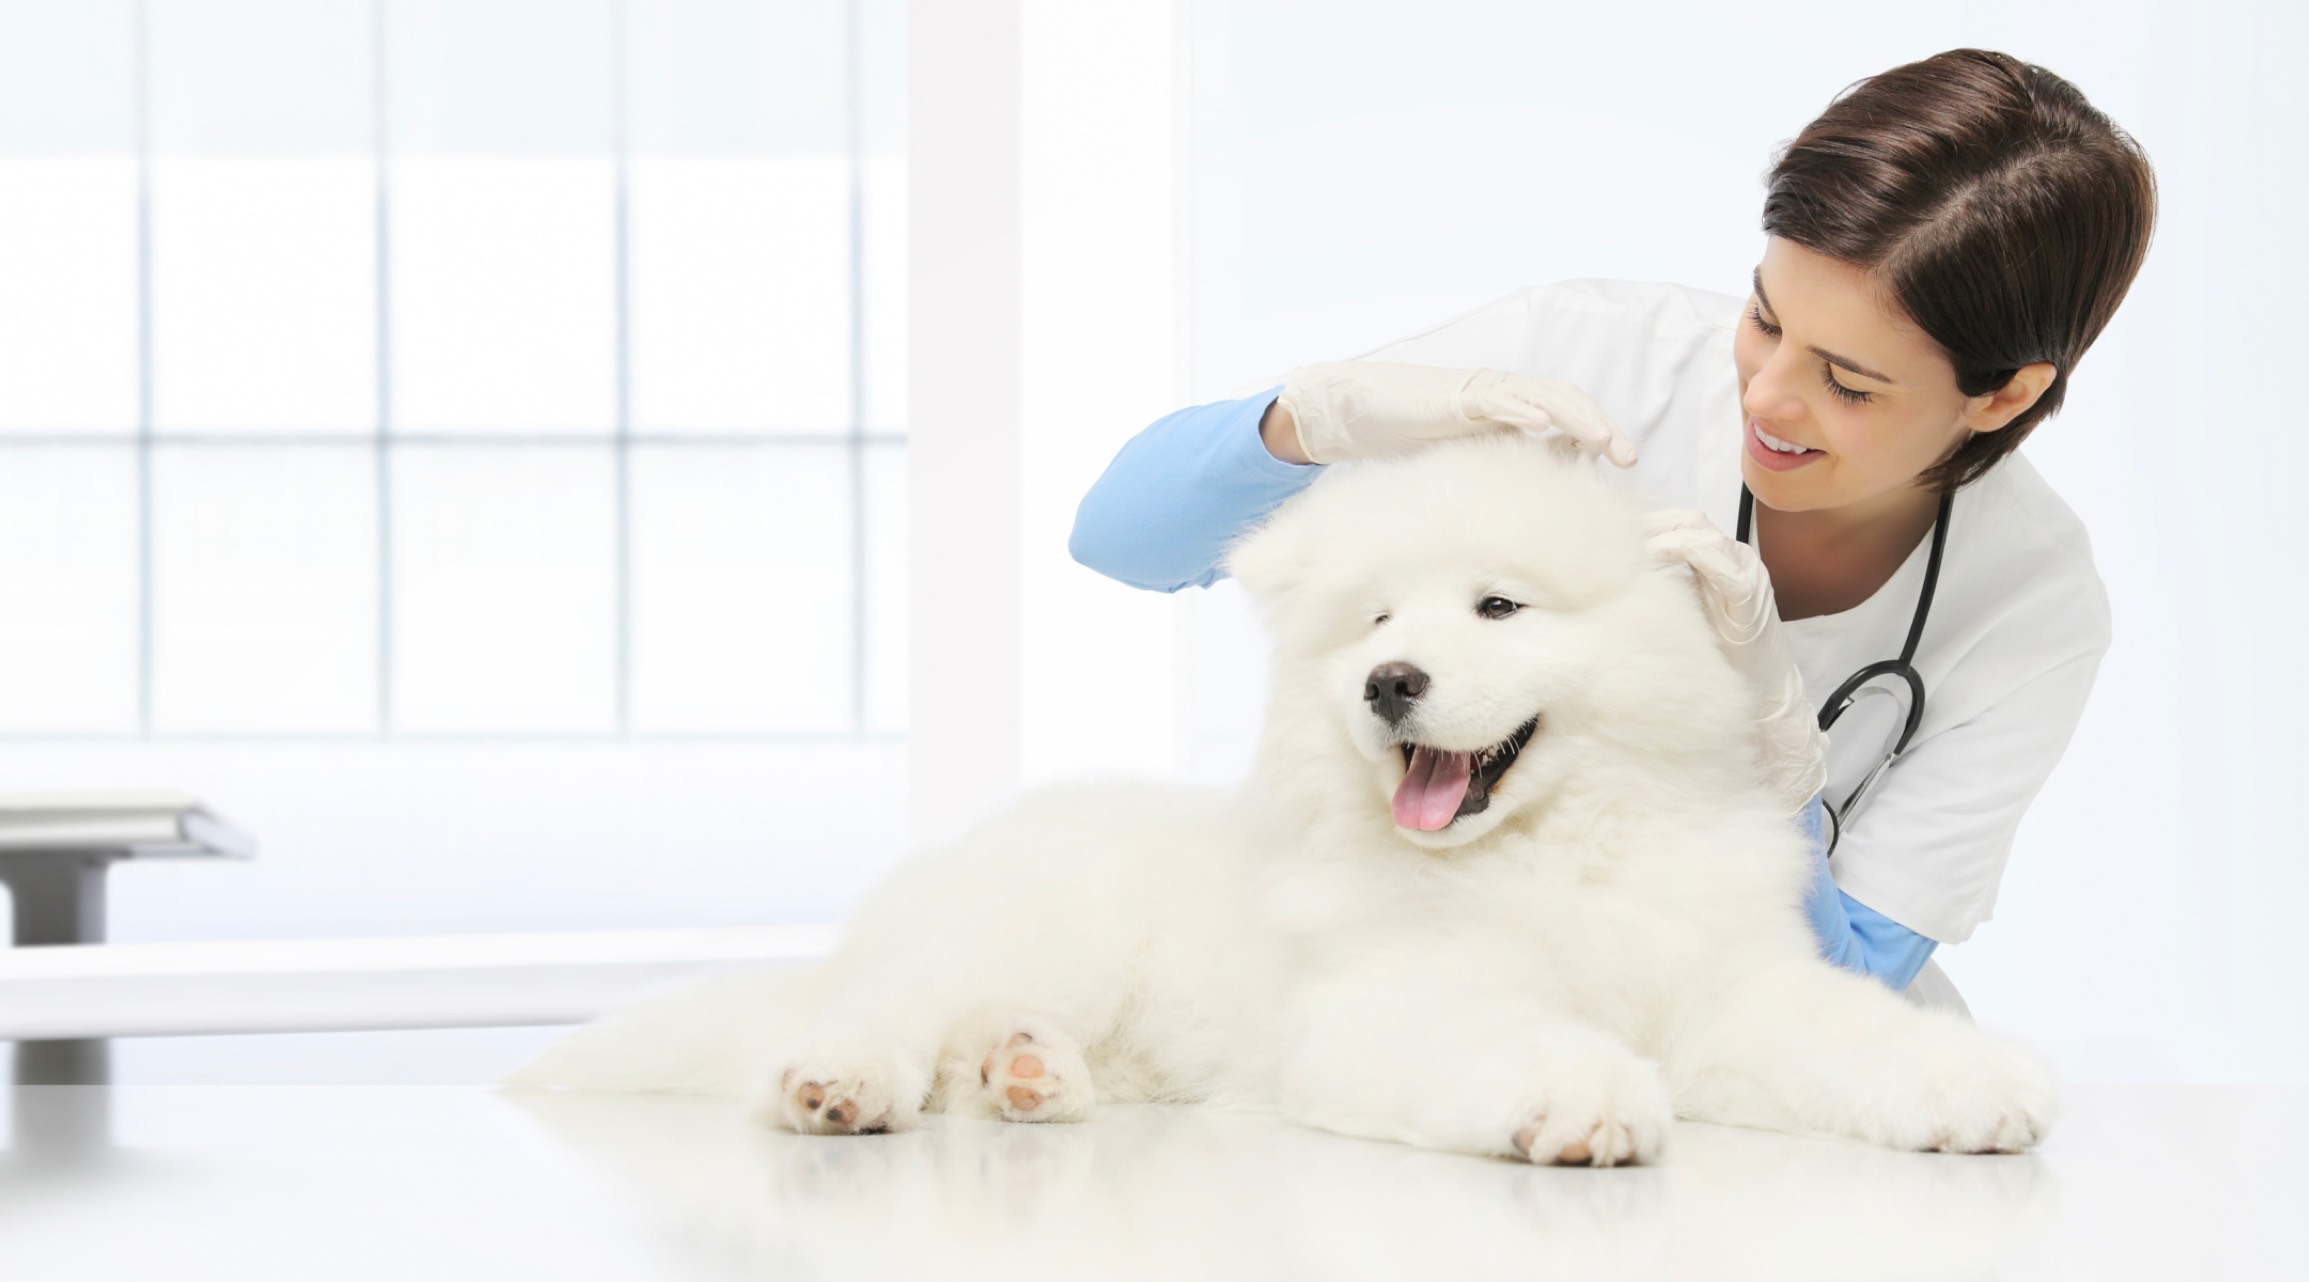 fluffy white dog on exam table being examined by smiling female veterinarian